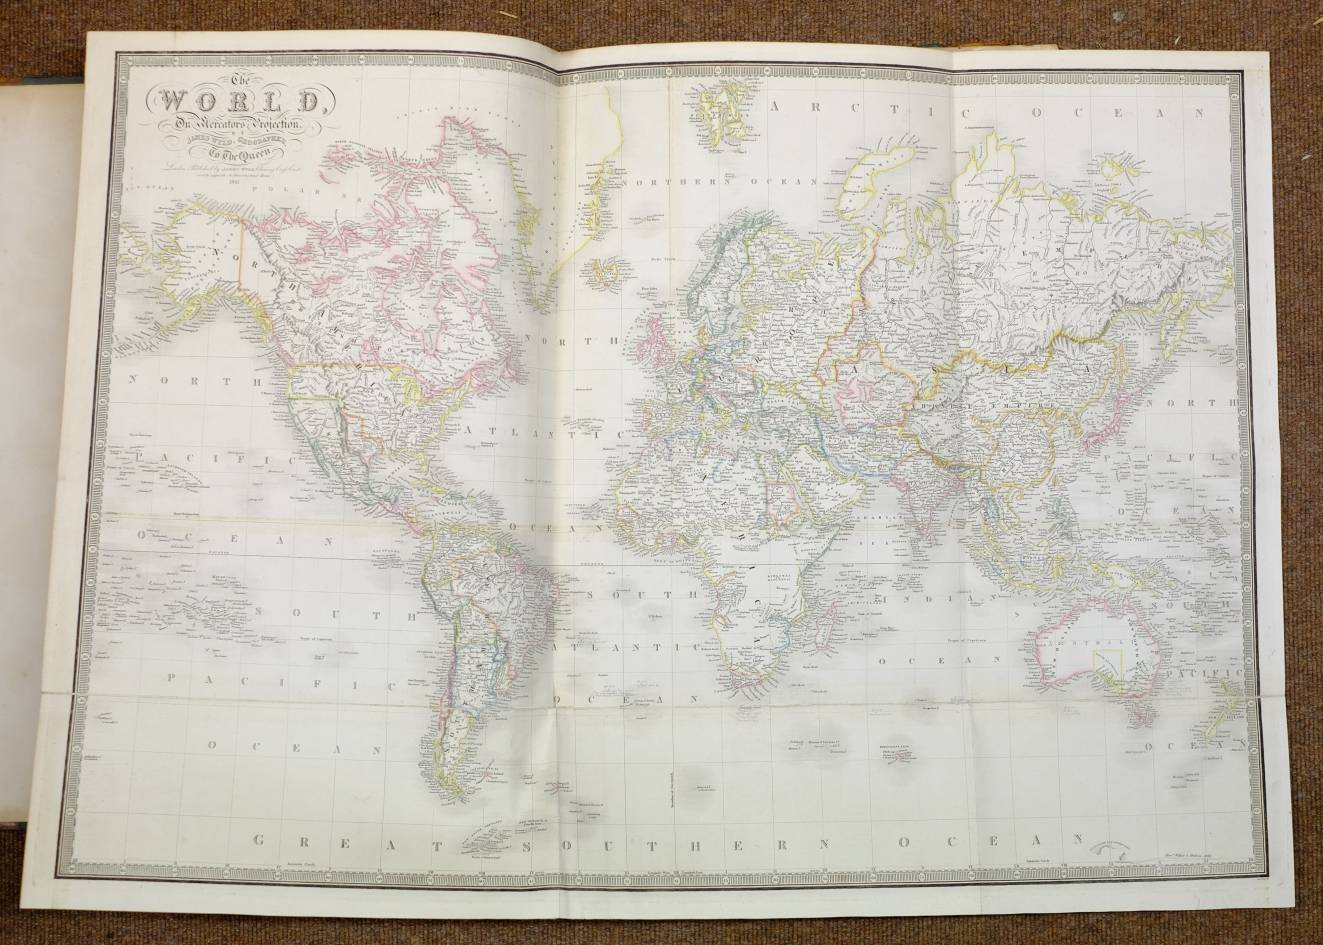 Lot 51 - Wyld (James, publisher). A New General Atlas of Modern geography consisting of a Complete collection